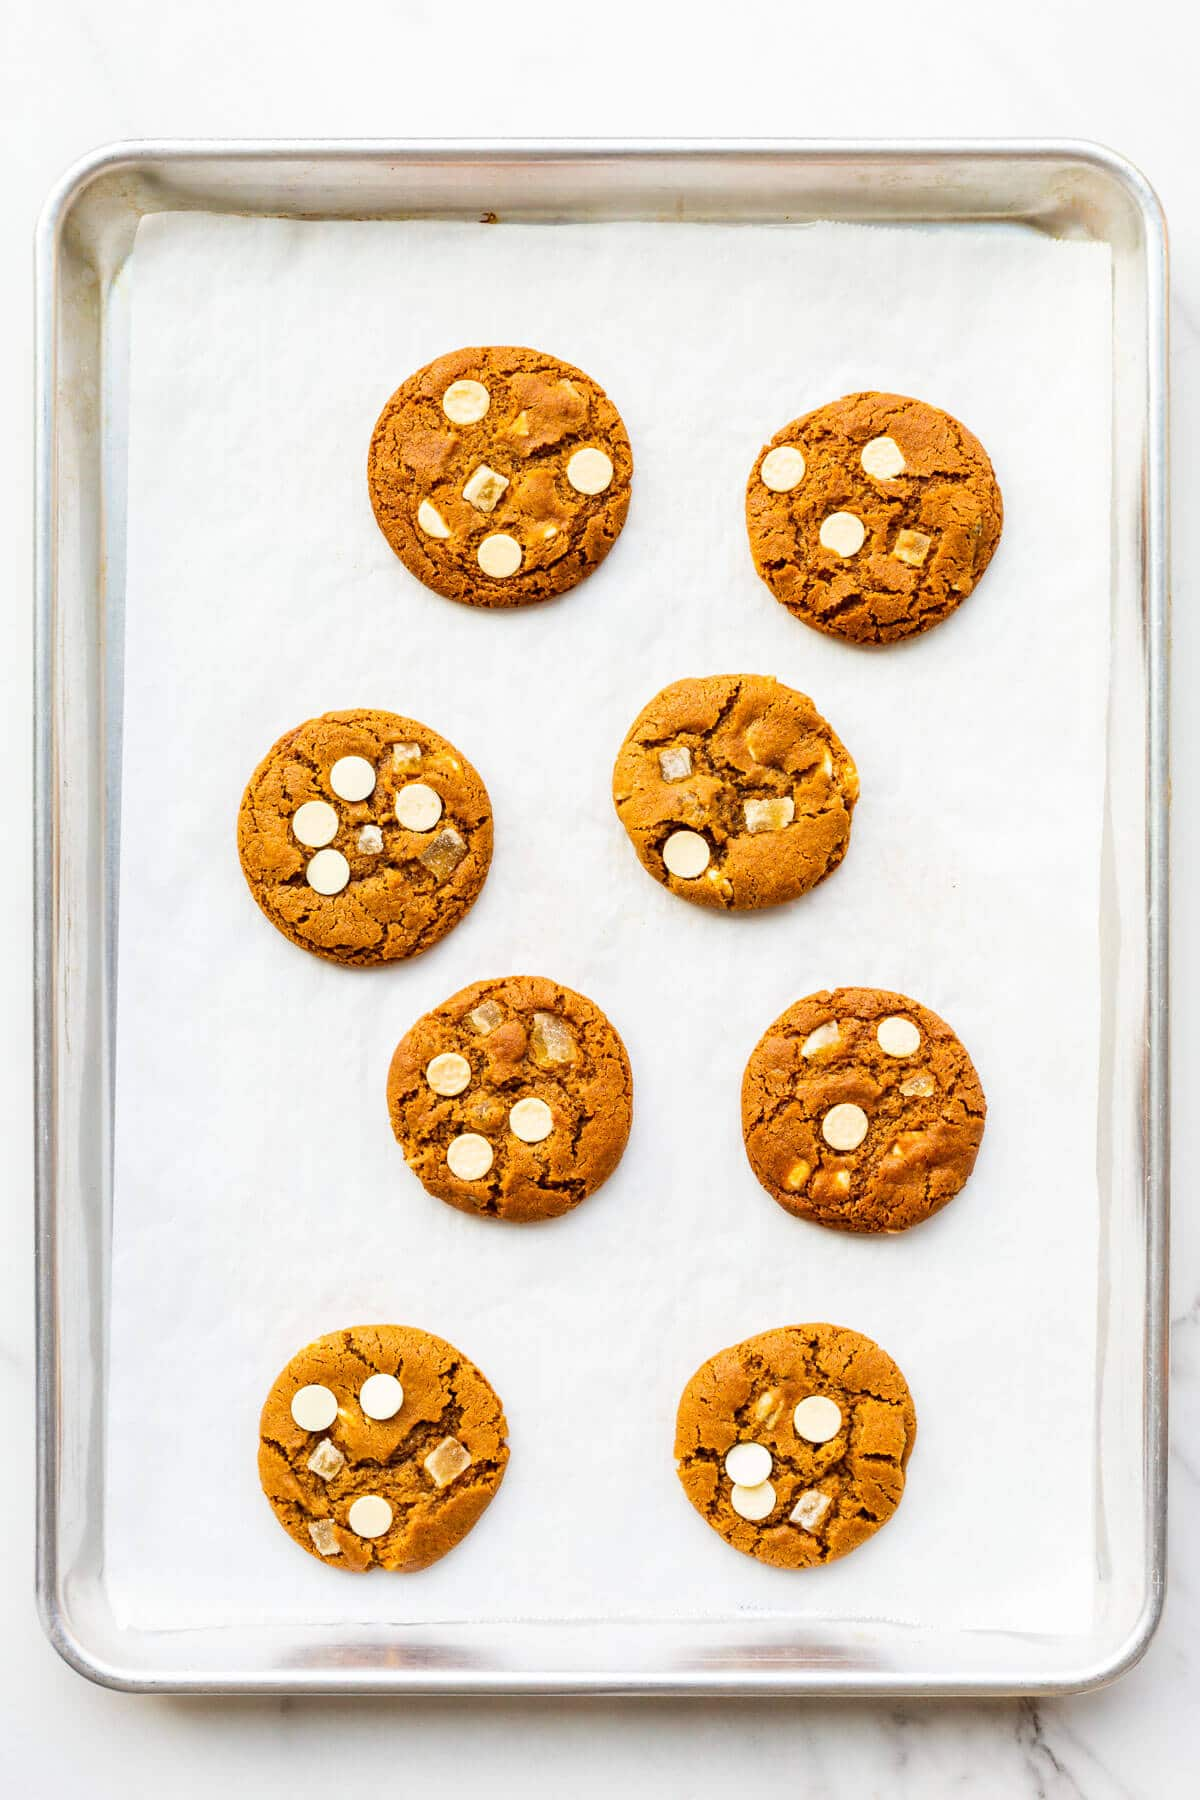 A sheet pan of freshly baked ginger cookies with white chocolate chips and chunks of crystallized ginger.